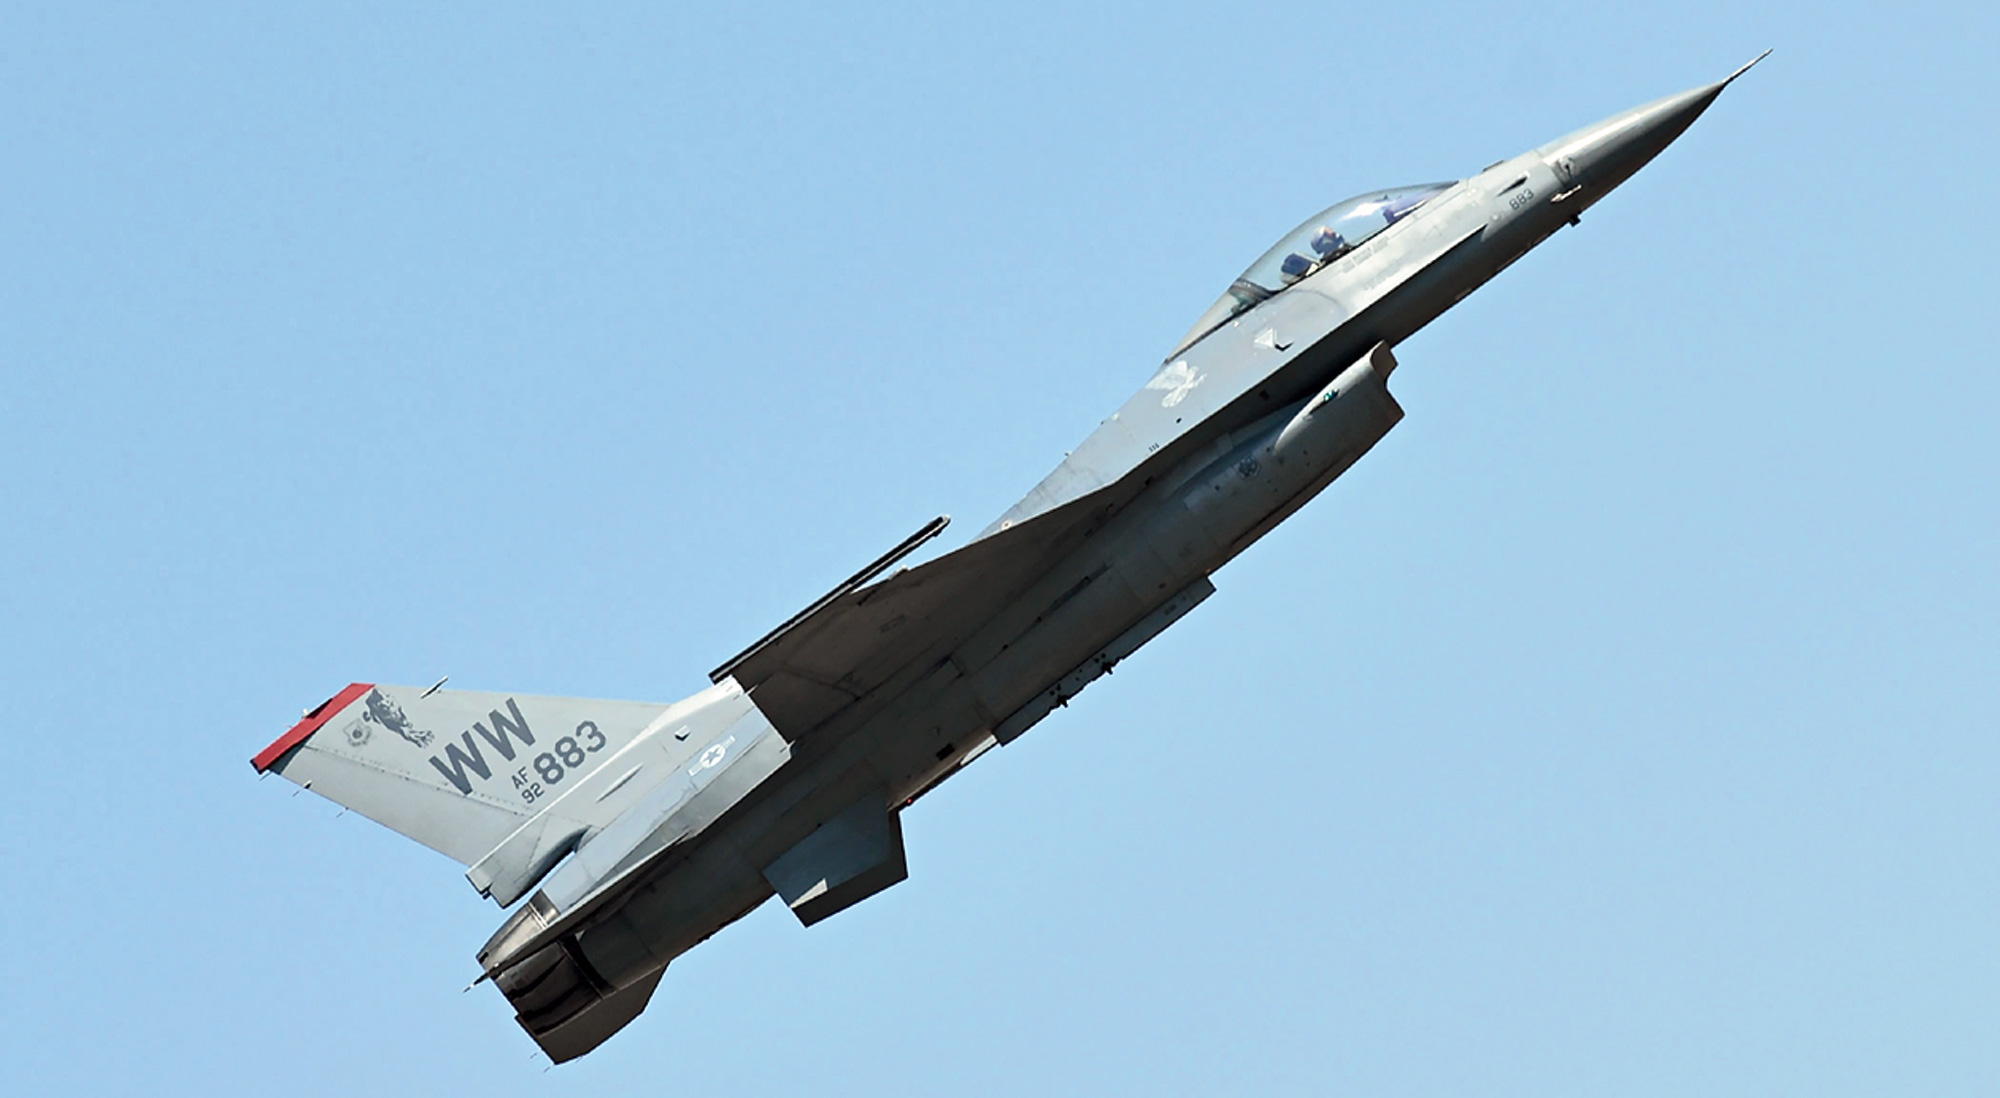 An F-16 fighter aircraft rehearses at the Yelahanka Air Base in Bangalore on February 17.